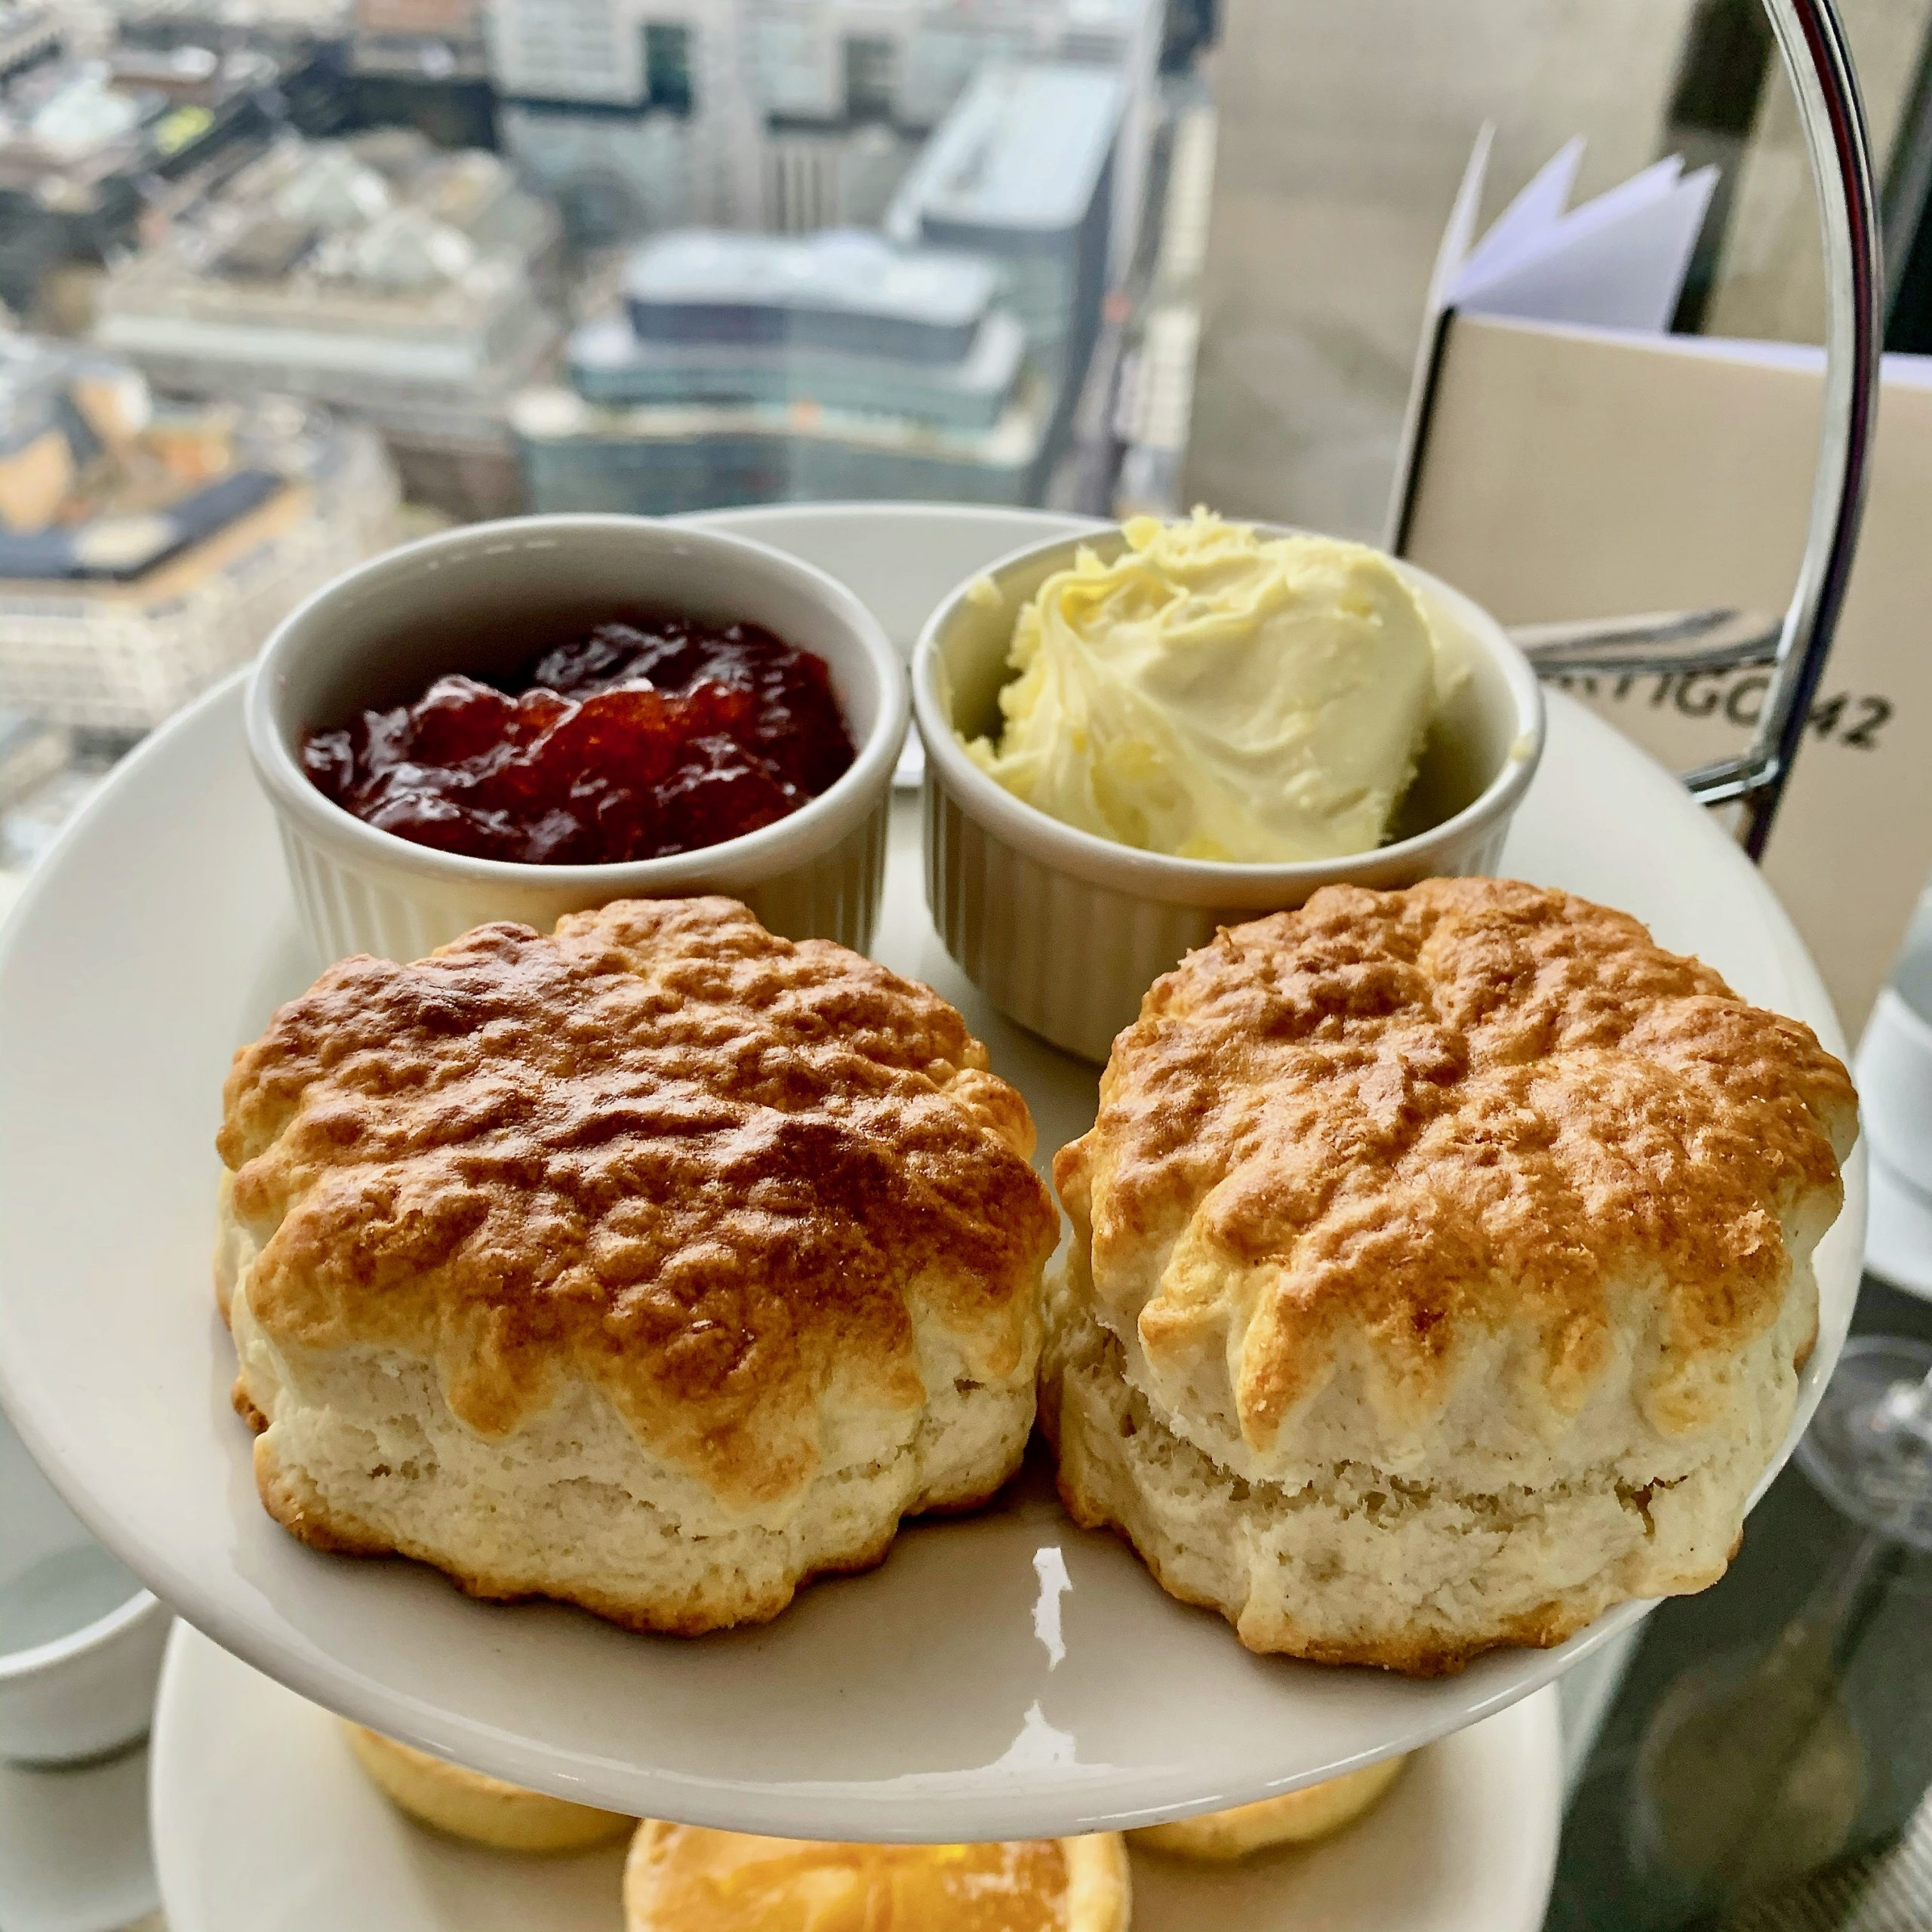 Vertigo 42 Afternoon Tea Scones